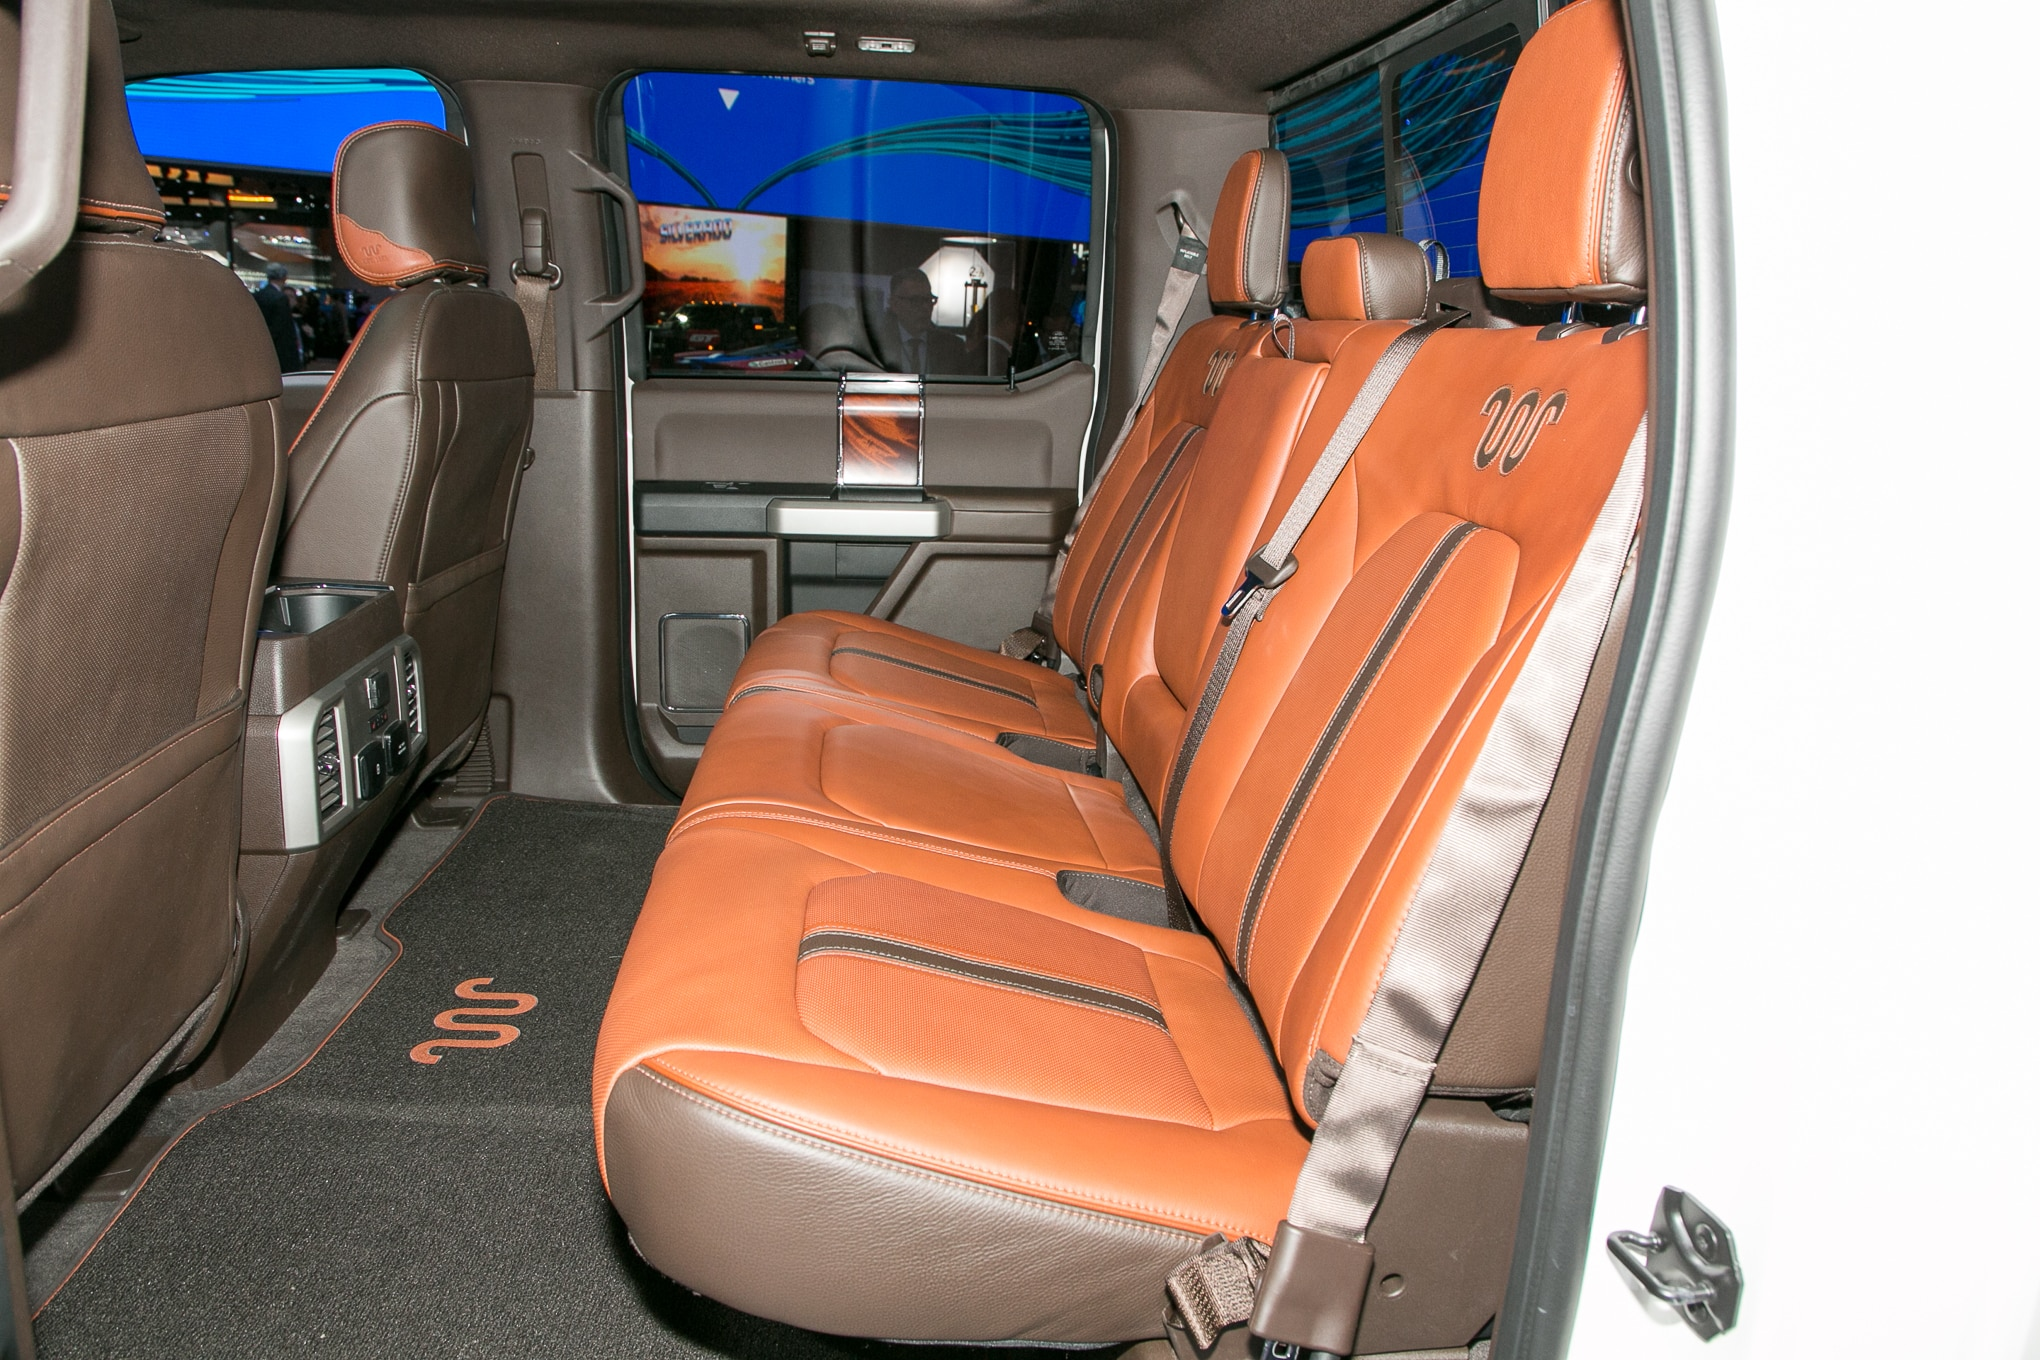 2018 Ford F 150 King Ranch rear interior seats - Motor ...